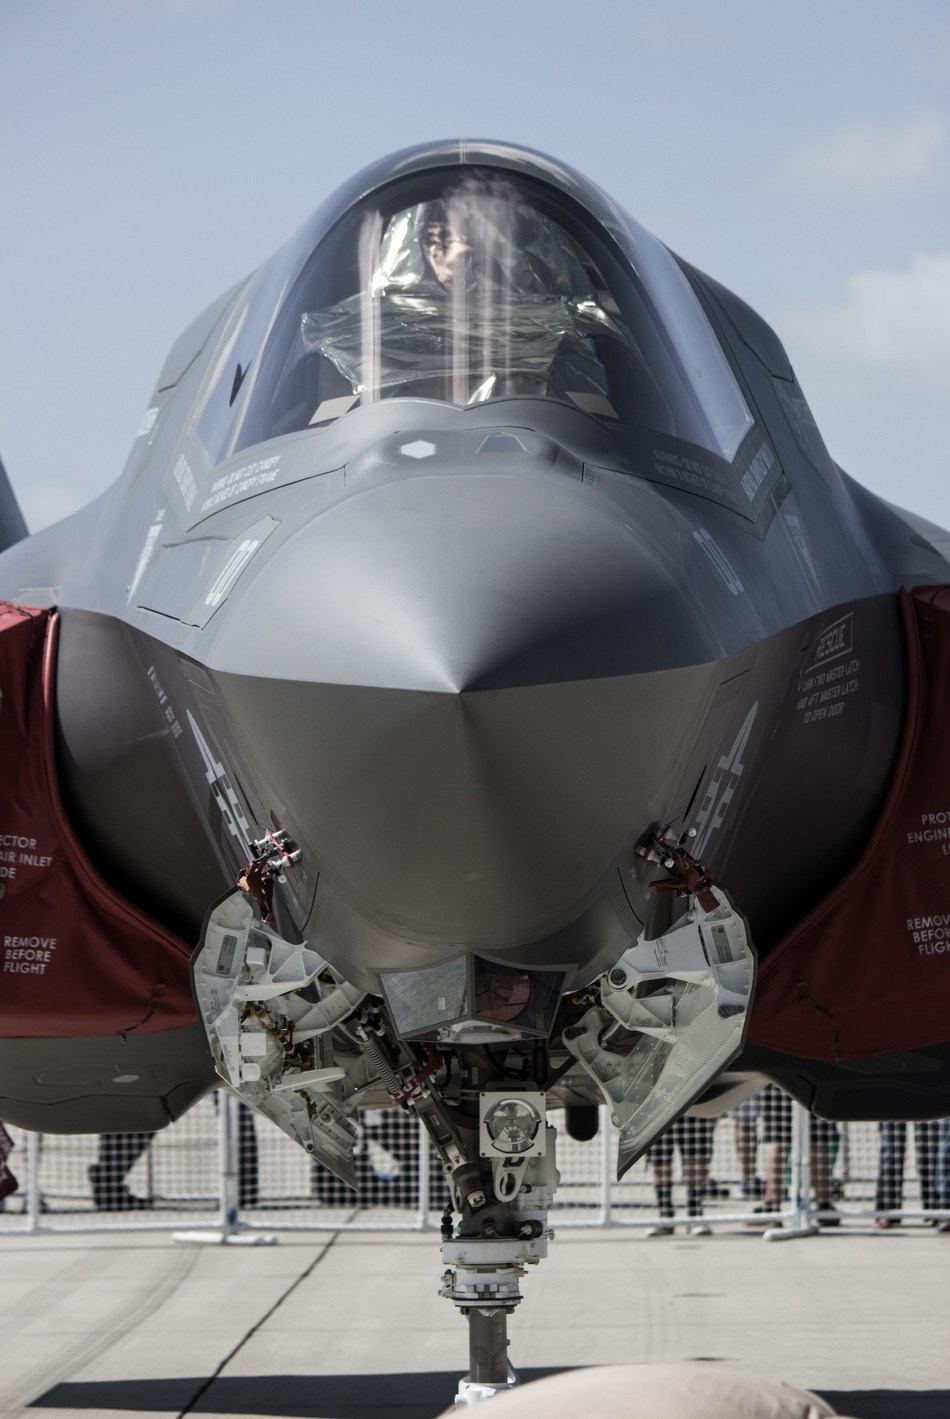 ETI Tech Inc., of Dayton, Ohio, provides more than 200 flight hardware parts for military aircraft and ground support equipment for the aerospace defense industry, including the F-35. ETI was acquired by majority investor Soaring Pine Capital (SPC), a Simon Group Holdings (SGH) company, of Birmingham, Mich.